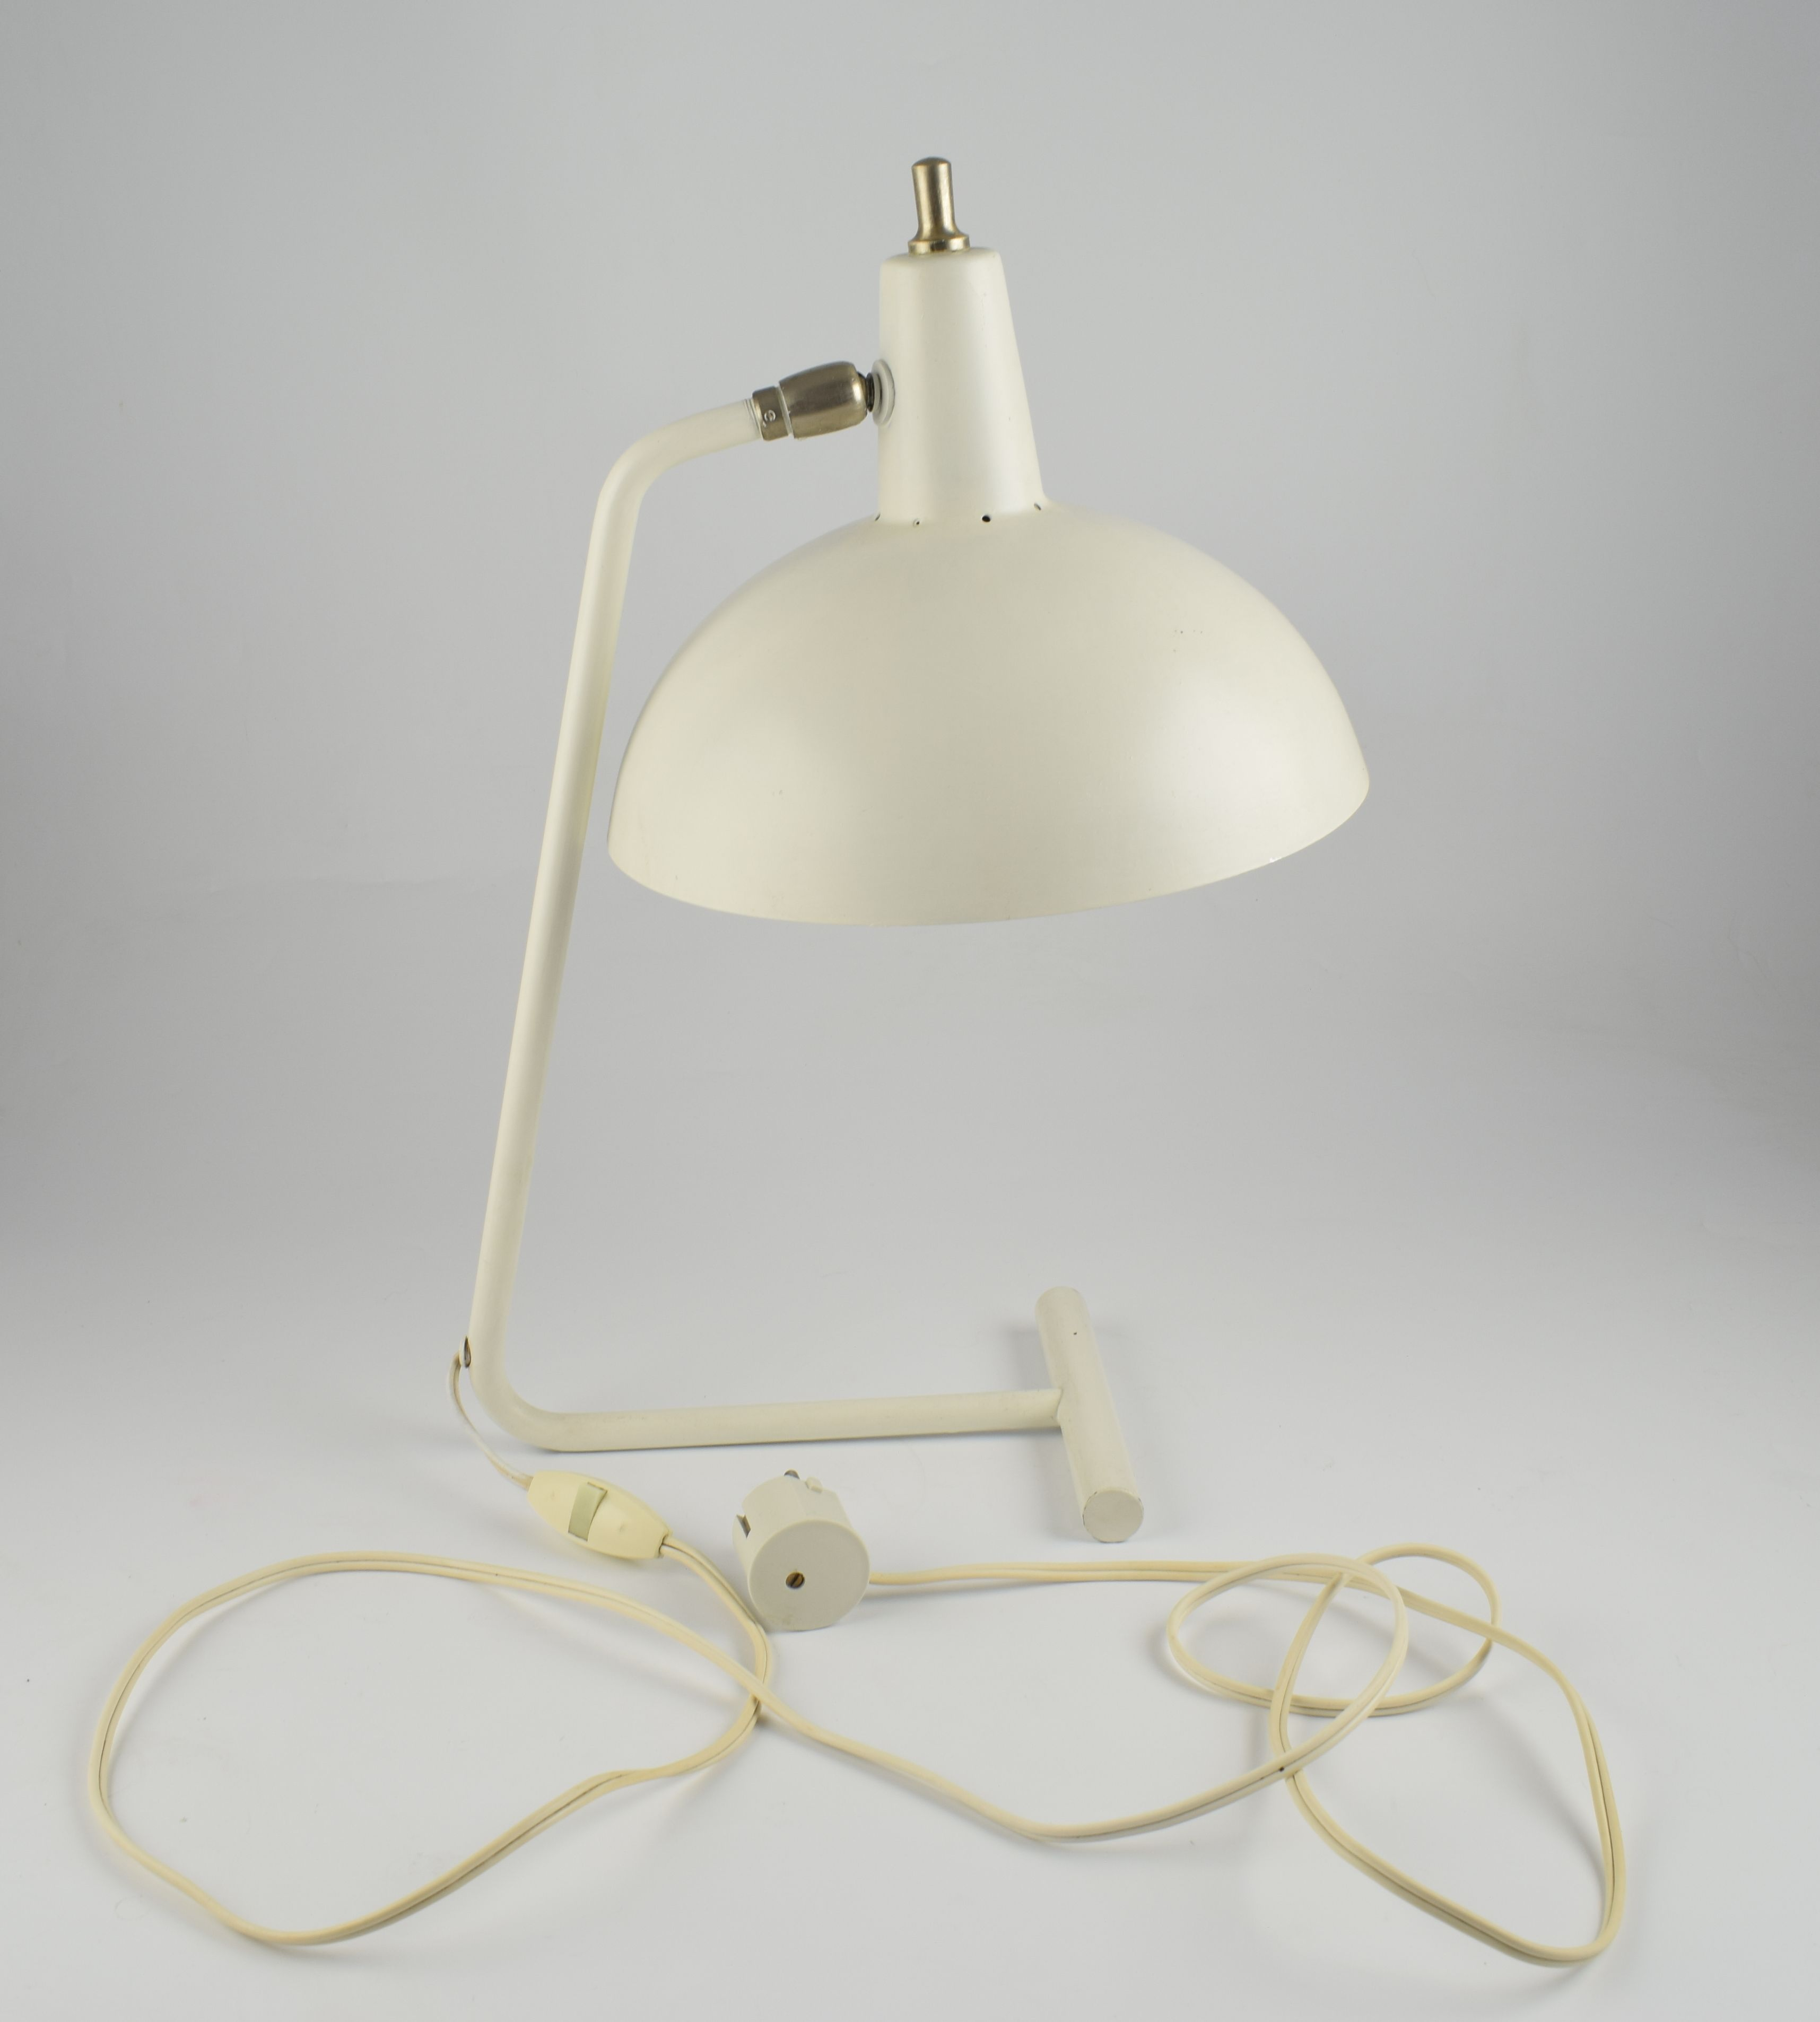 Anvia Table Lamp Decirculo Vintage